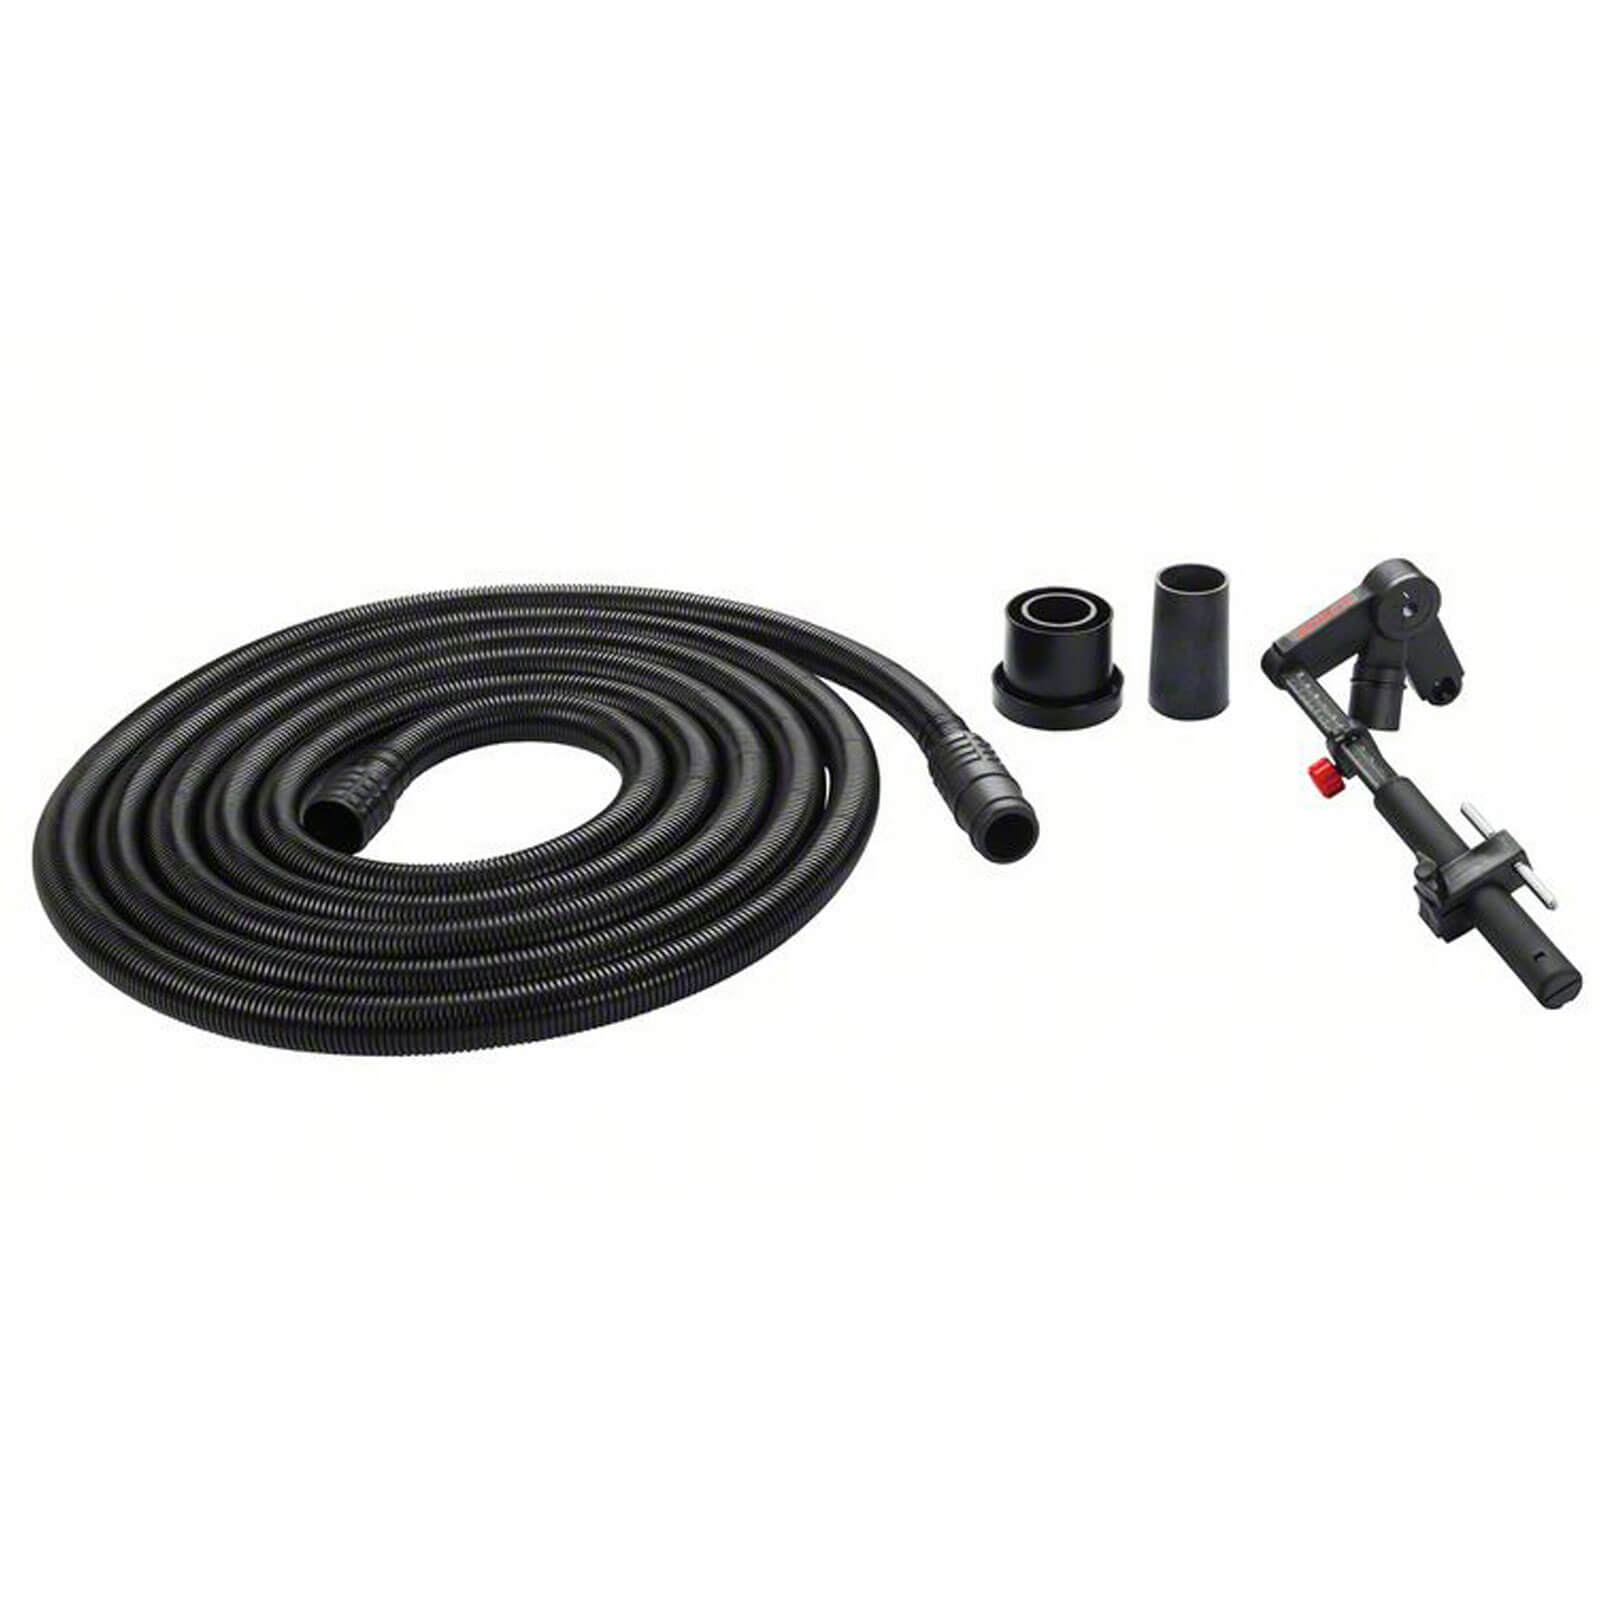 bosch hook up kit They use a mechanical only advance and are set up for idle or on before they switched to electronic ignition bosch 1231 251 033: parts kit (shims.